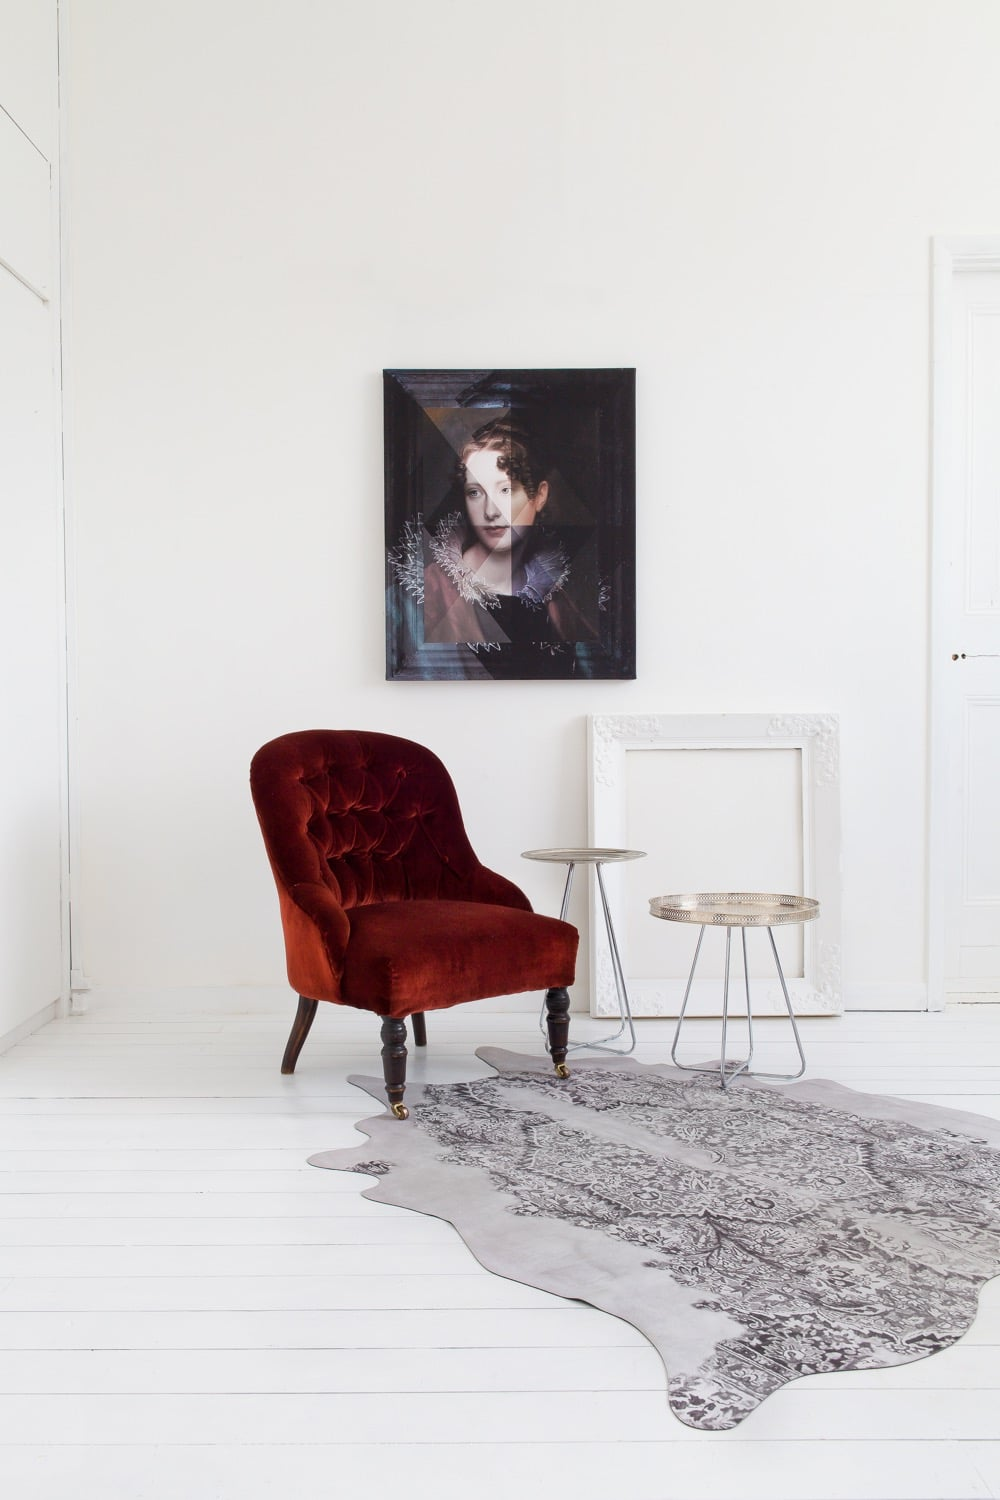 This beautiful print by designers Young & Battaglia playfully blurs the boundaries between the frame and the artwork by superimposing fragments of colour over a traditional neoclassical portrait and frame, both of which are digitally printed on to the canvas itself.